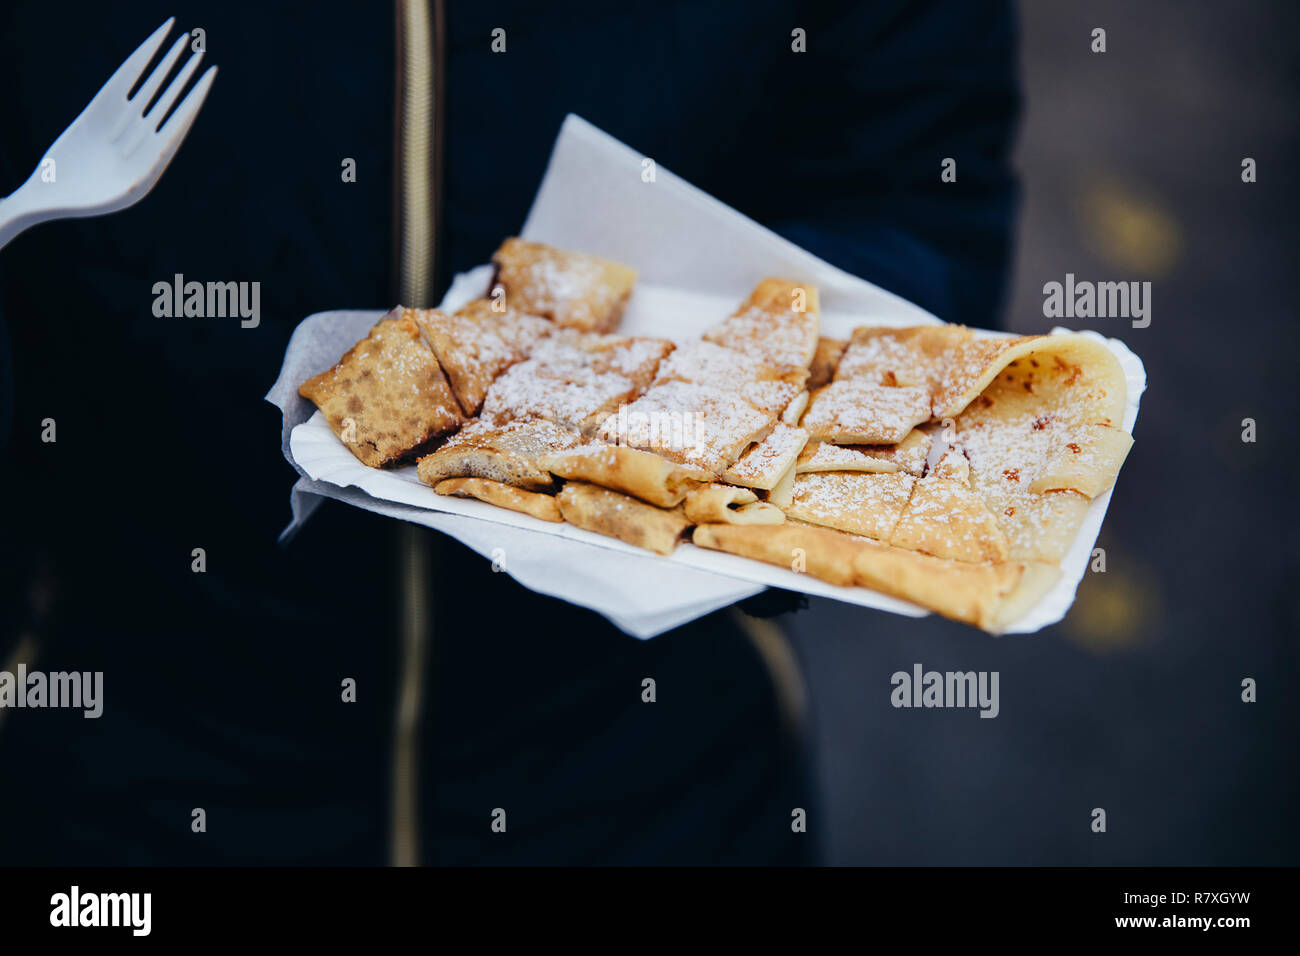 Close-up of freshly prepared crepes which are thin pancakes with chocolate spread filling outside at Christmas market. Popular warm street food in Swi - Stock Image